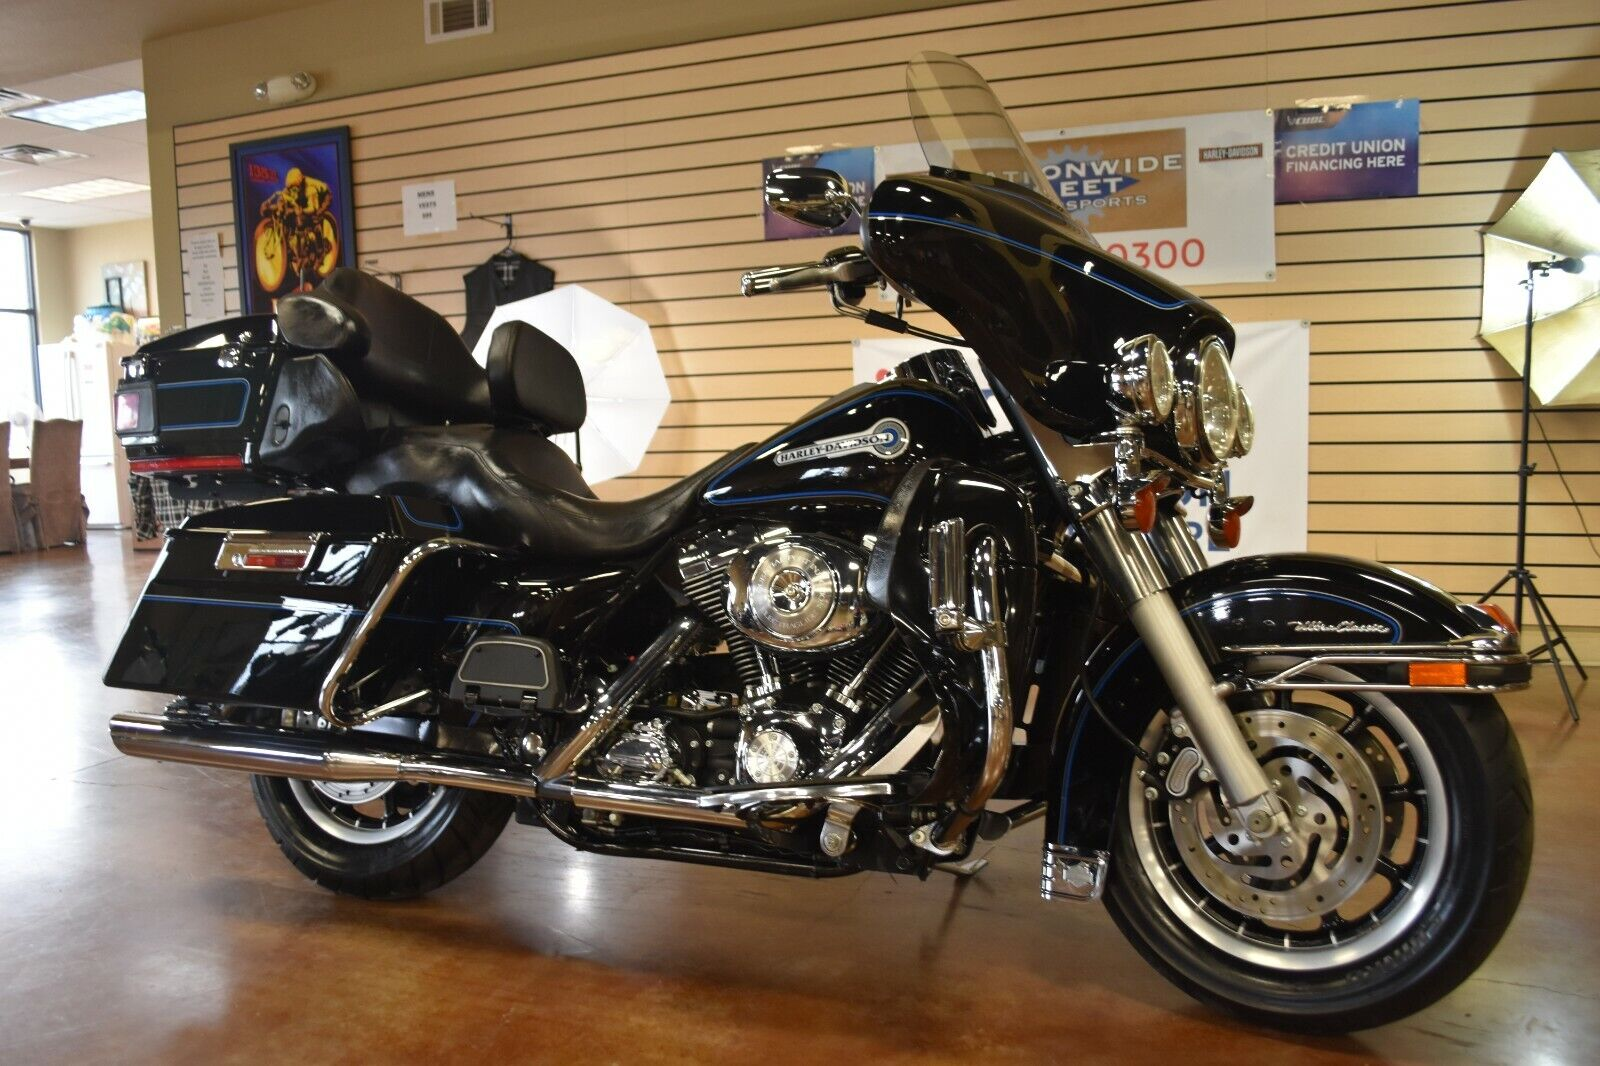 2006 Harley Davidson Electra Glide Ultra Classic FLHTCUI Peace Officer Edition